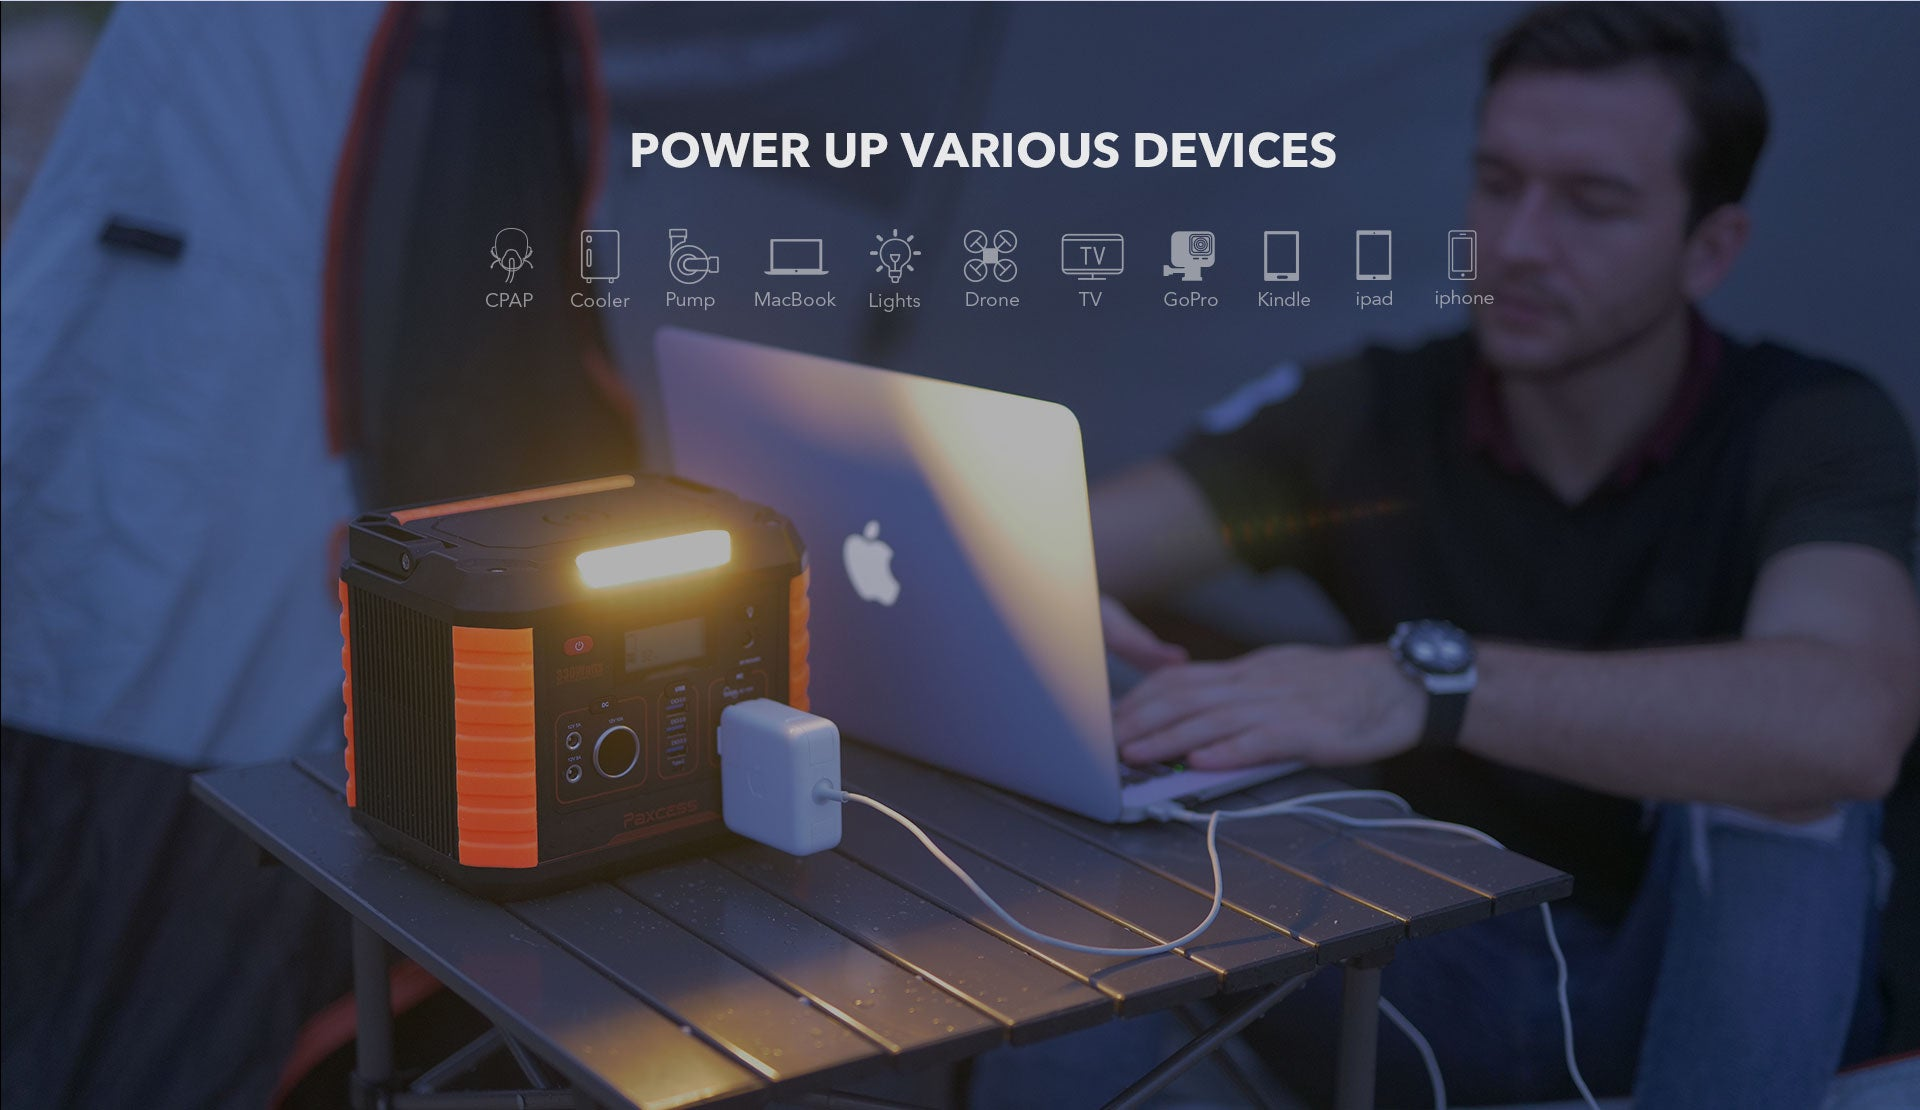 Paxcess 330W Portable Power Station Power Up Various devices